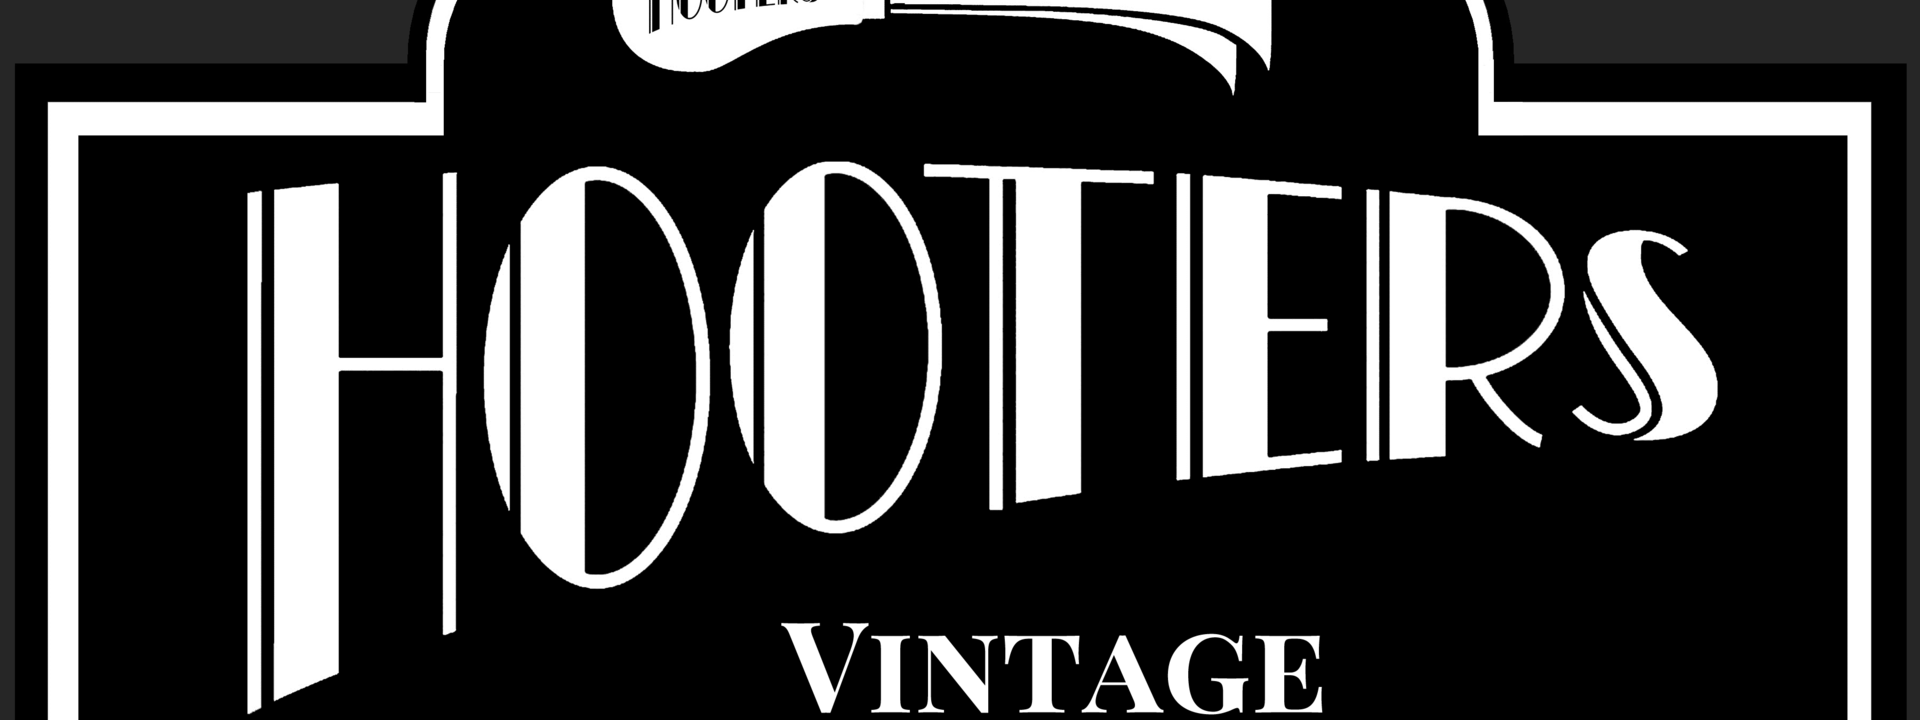 Logo: Hooters Vintage & Classic Vehicle Hire